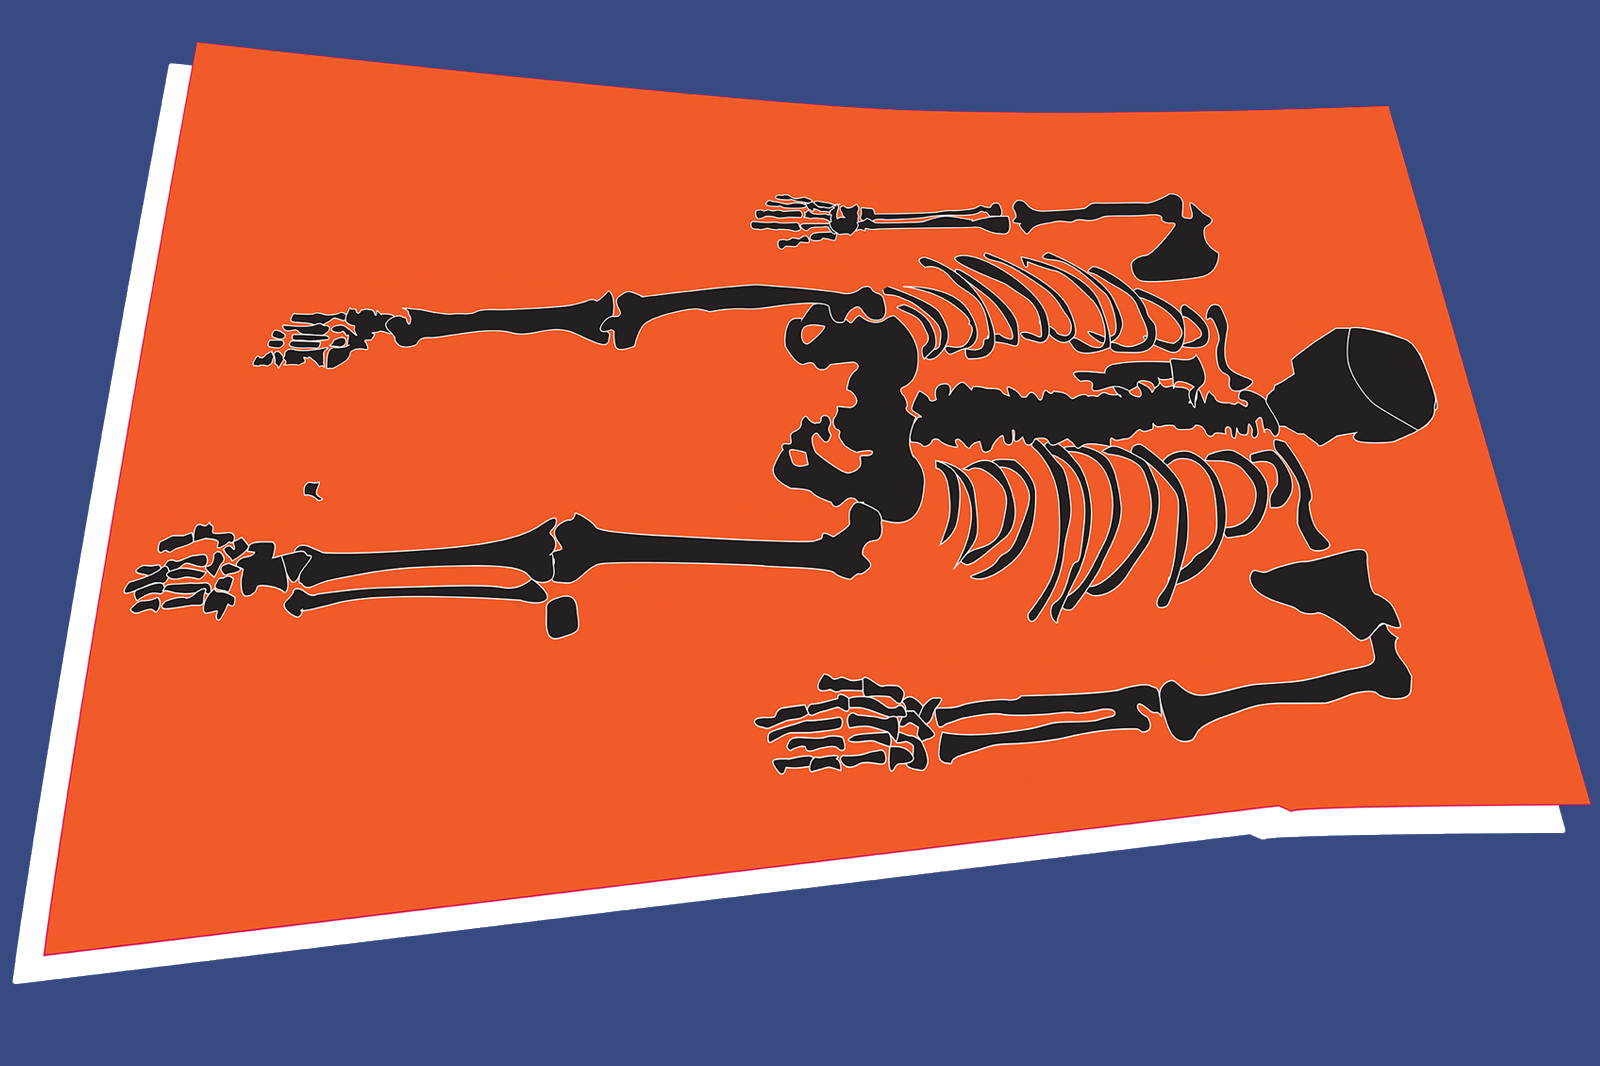 Illustration of a skeleton laid out for inspection